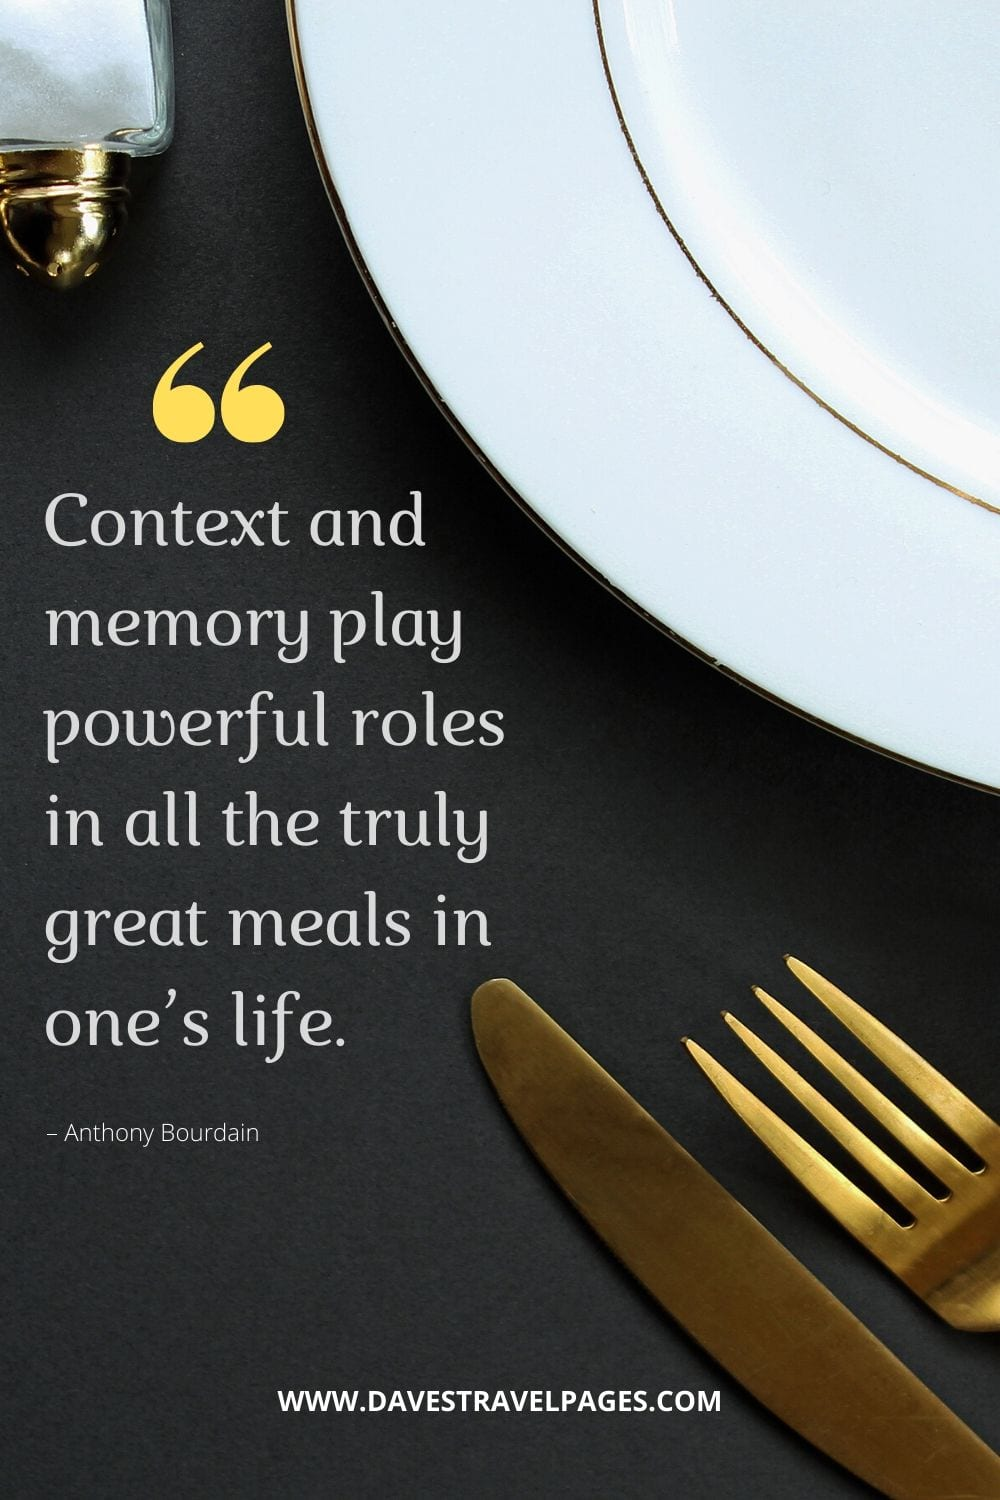 """""""Context and memory play powerful roles in all the truly great meals in one's life."""" – Anthony Bourdain"""